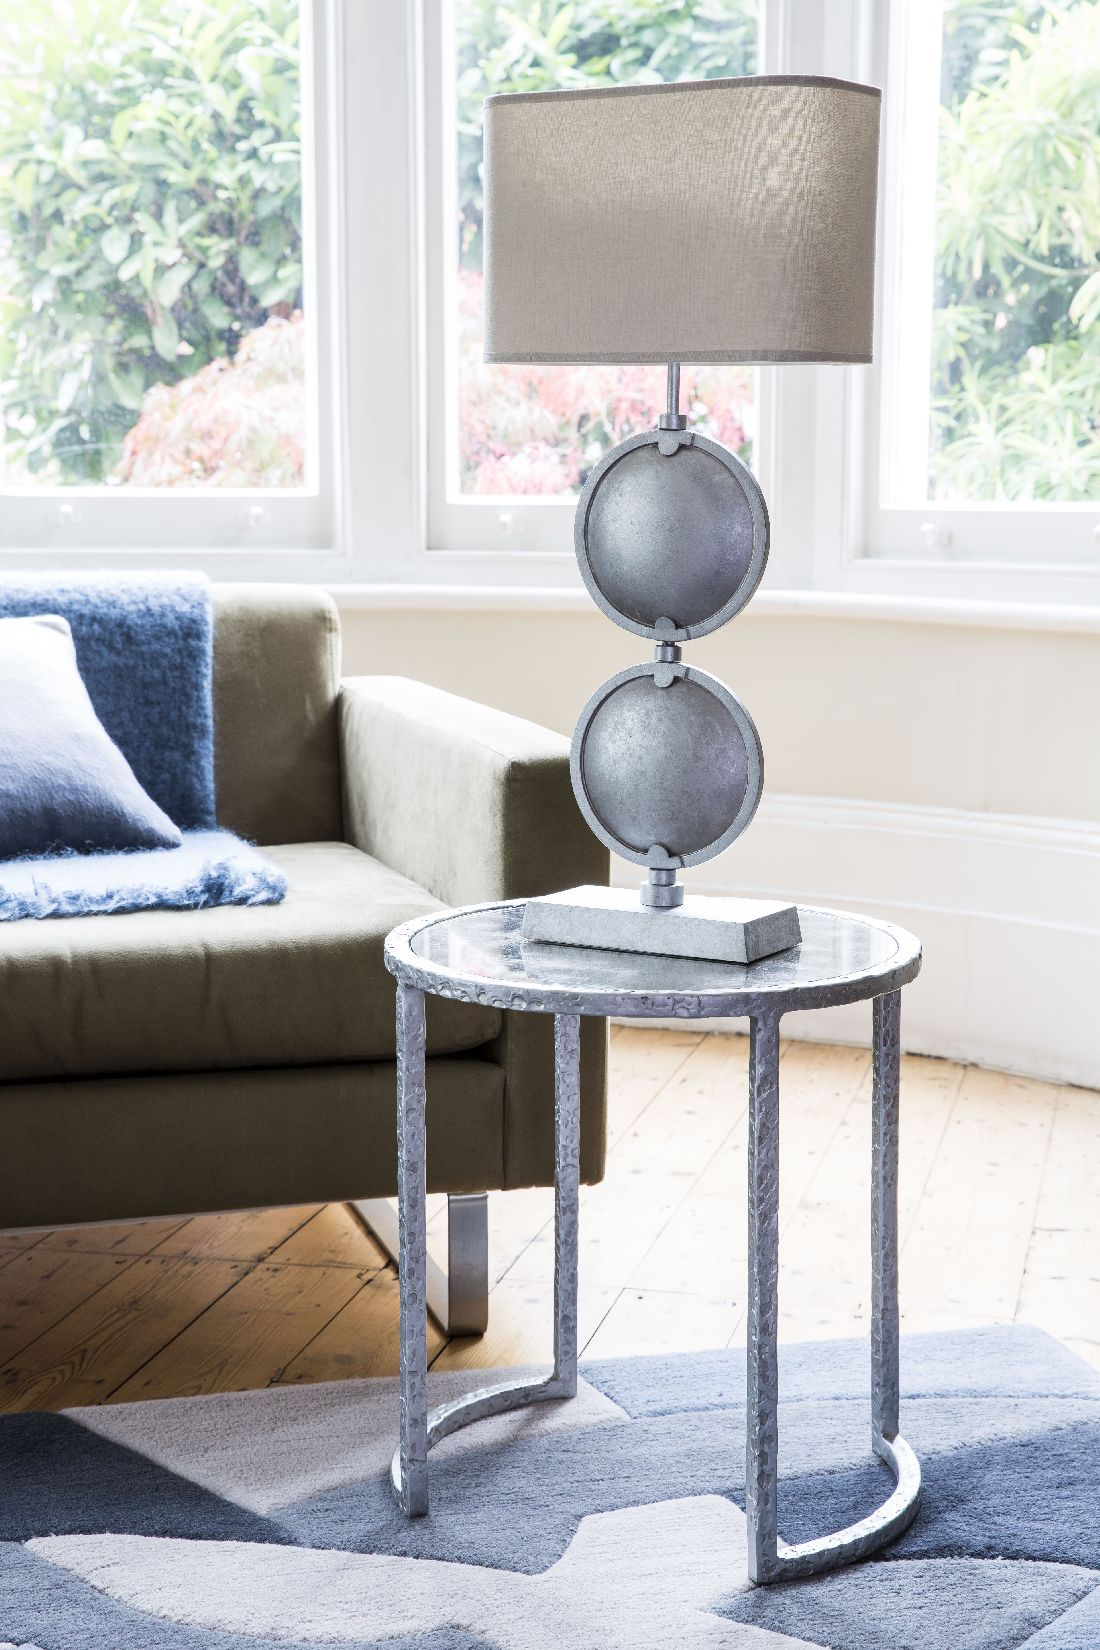 17blackbird-london_double-discus-table-lamp-in-antique-silver.jpg